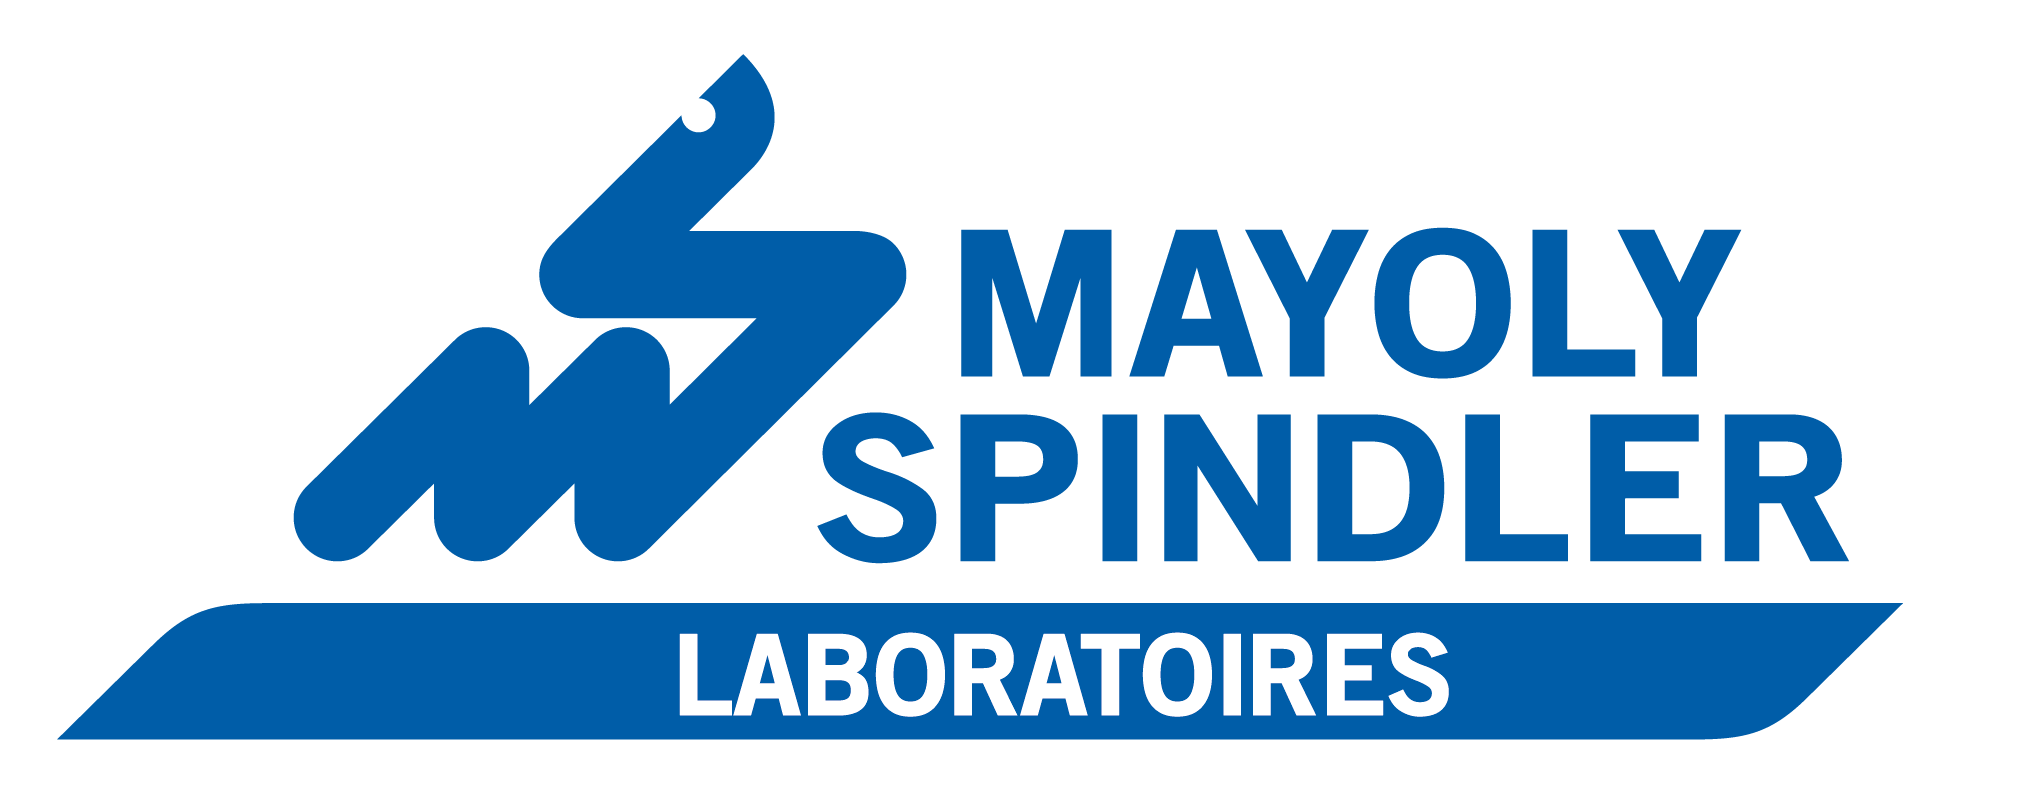 mayoly spindler laboratories